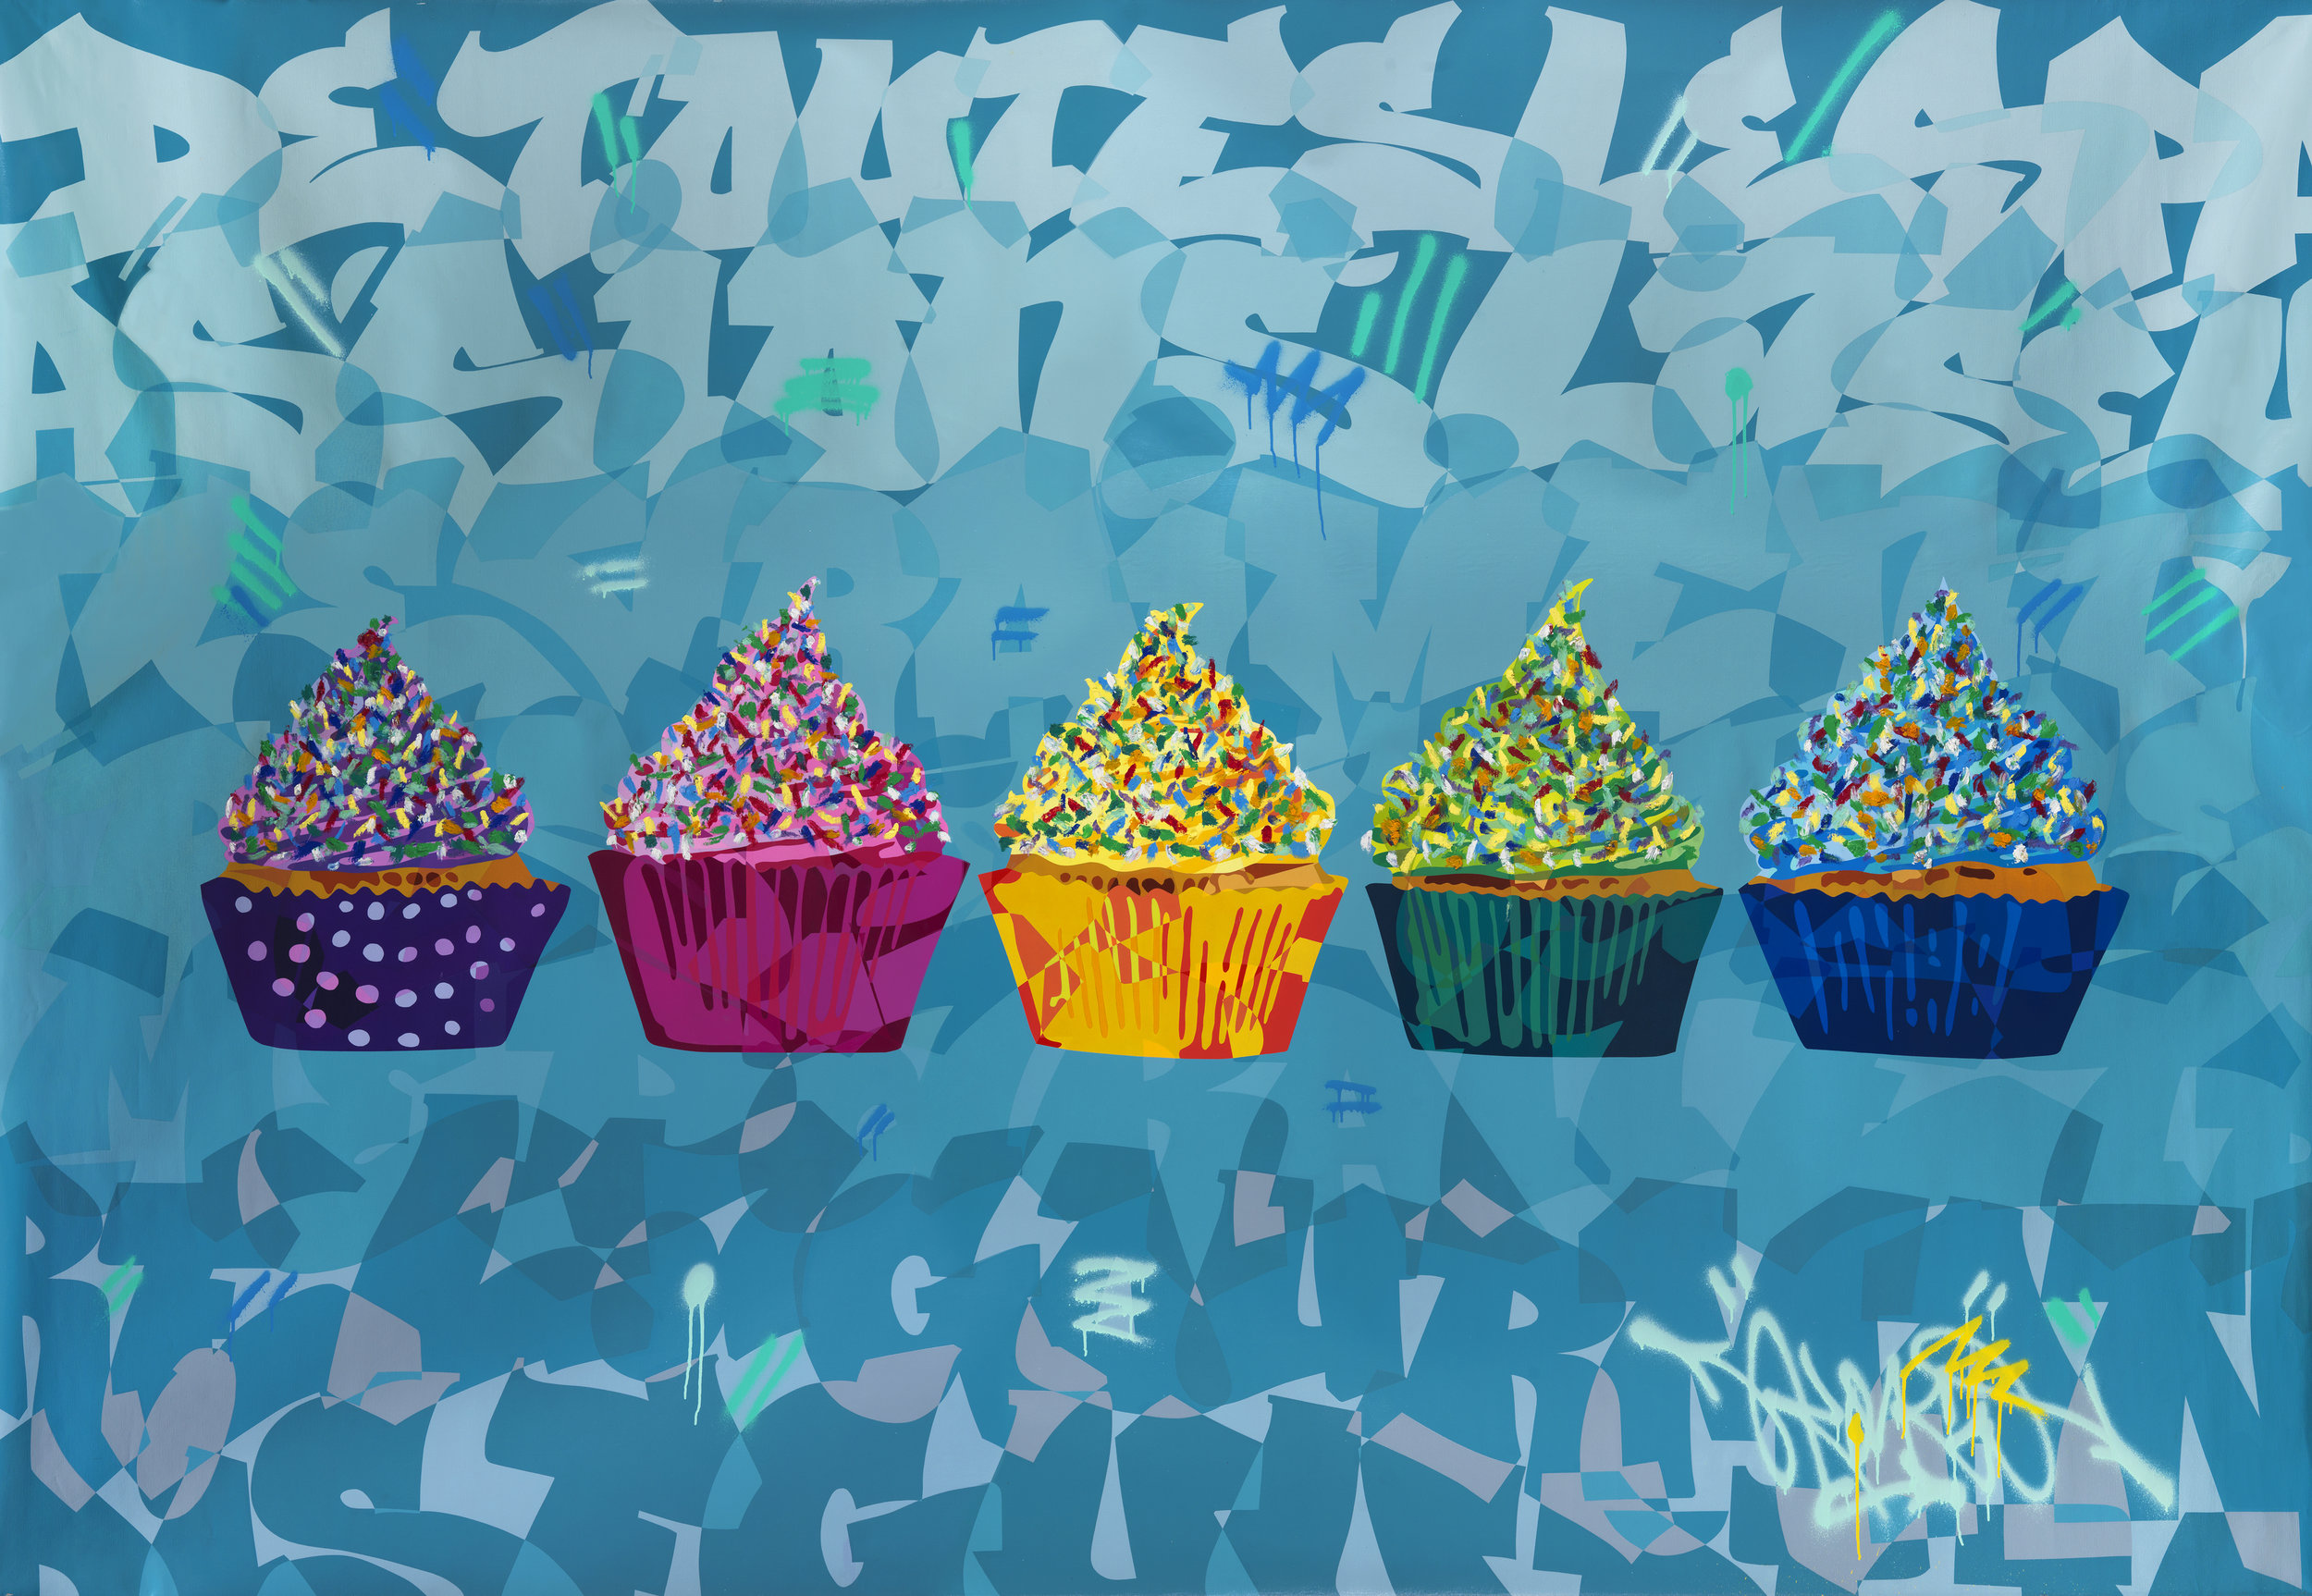 Artist: Kongo, b.1969 (FRANCE)  Title: Les Cinq Cup Cakes Medium: mixed media on french linen Dimension: 206 cm x 306 cm Year: 2018